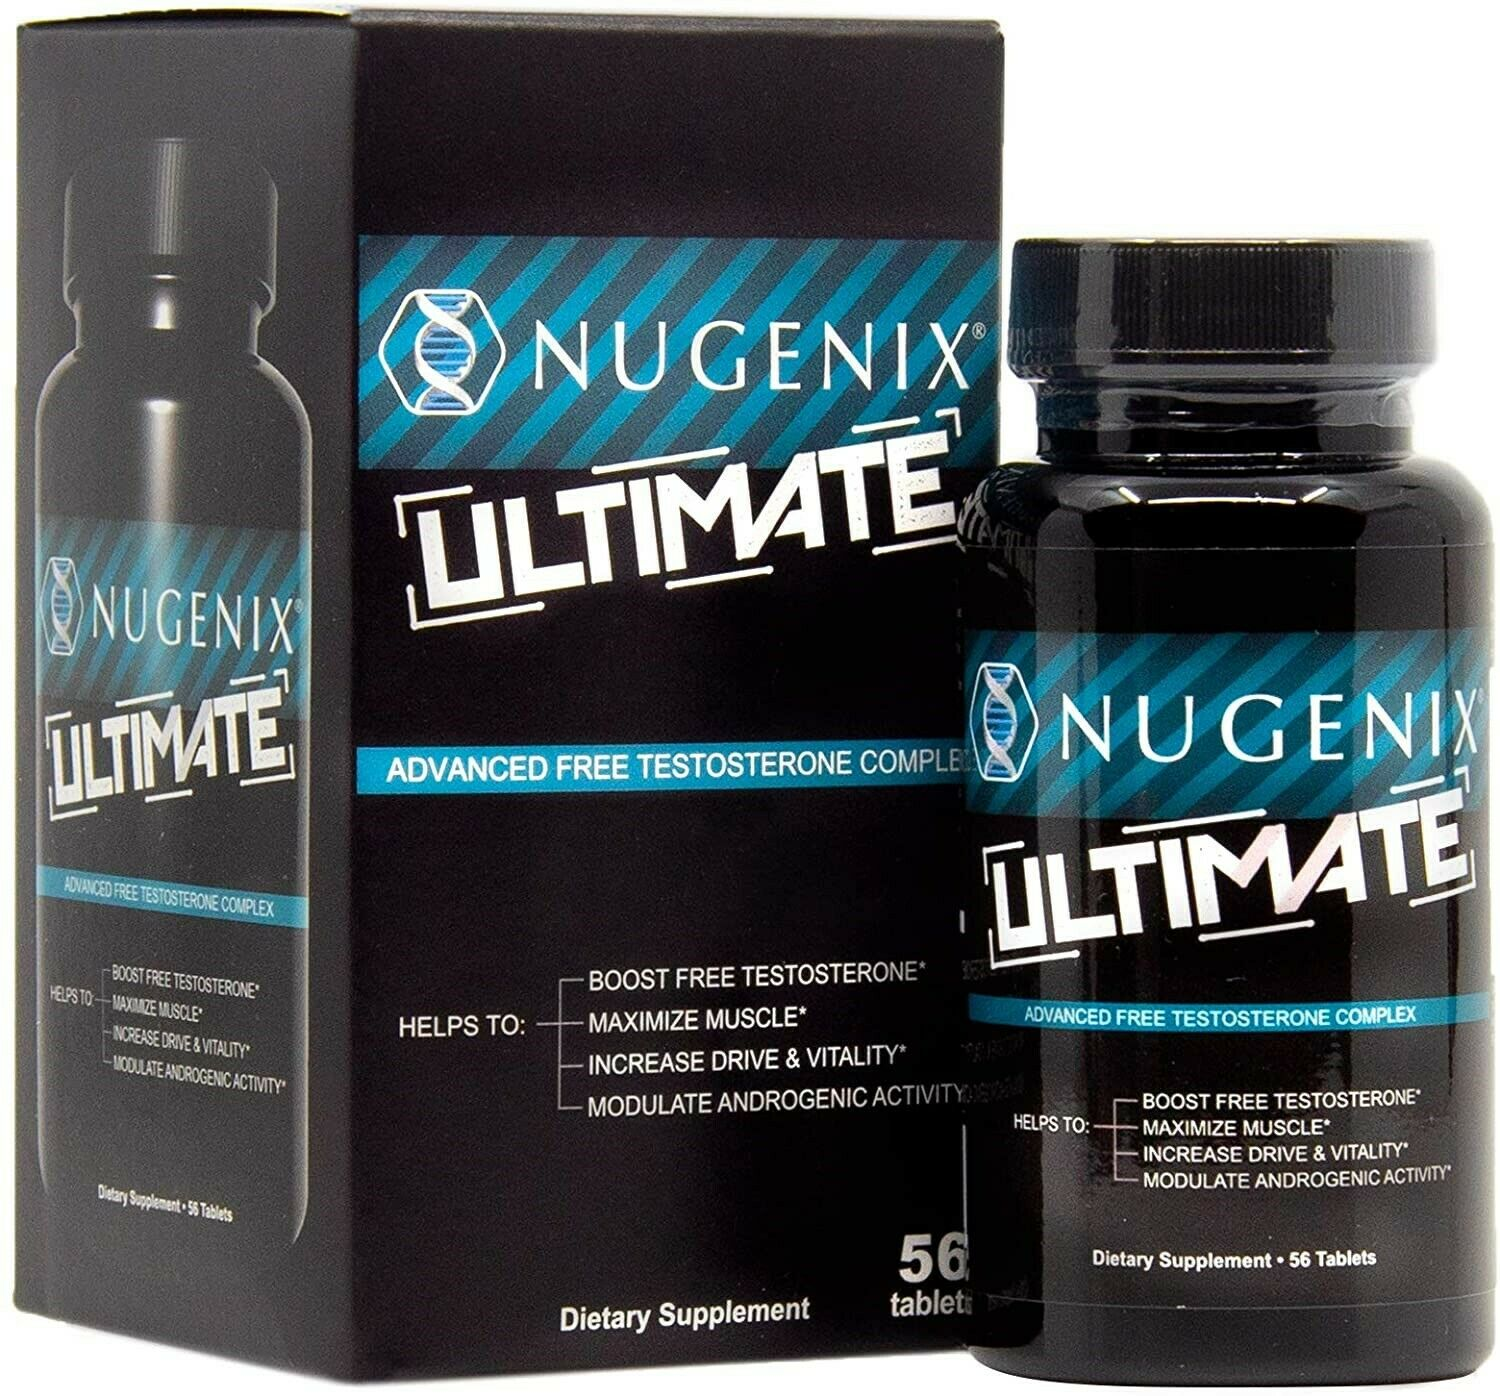 Nugenix Ultimate Testosterone Booster for Men, Maximizes Muscle, Boost Vitality